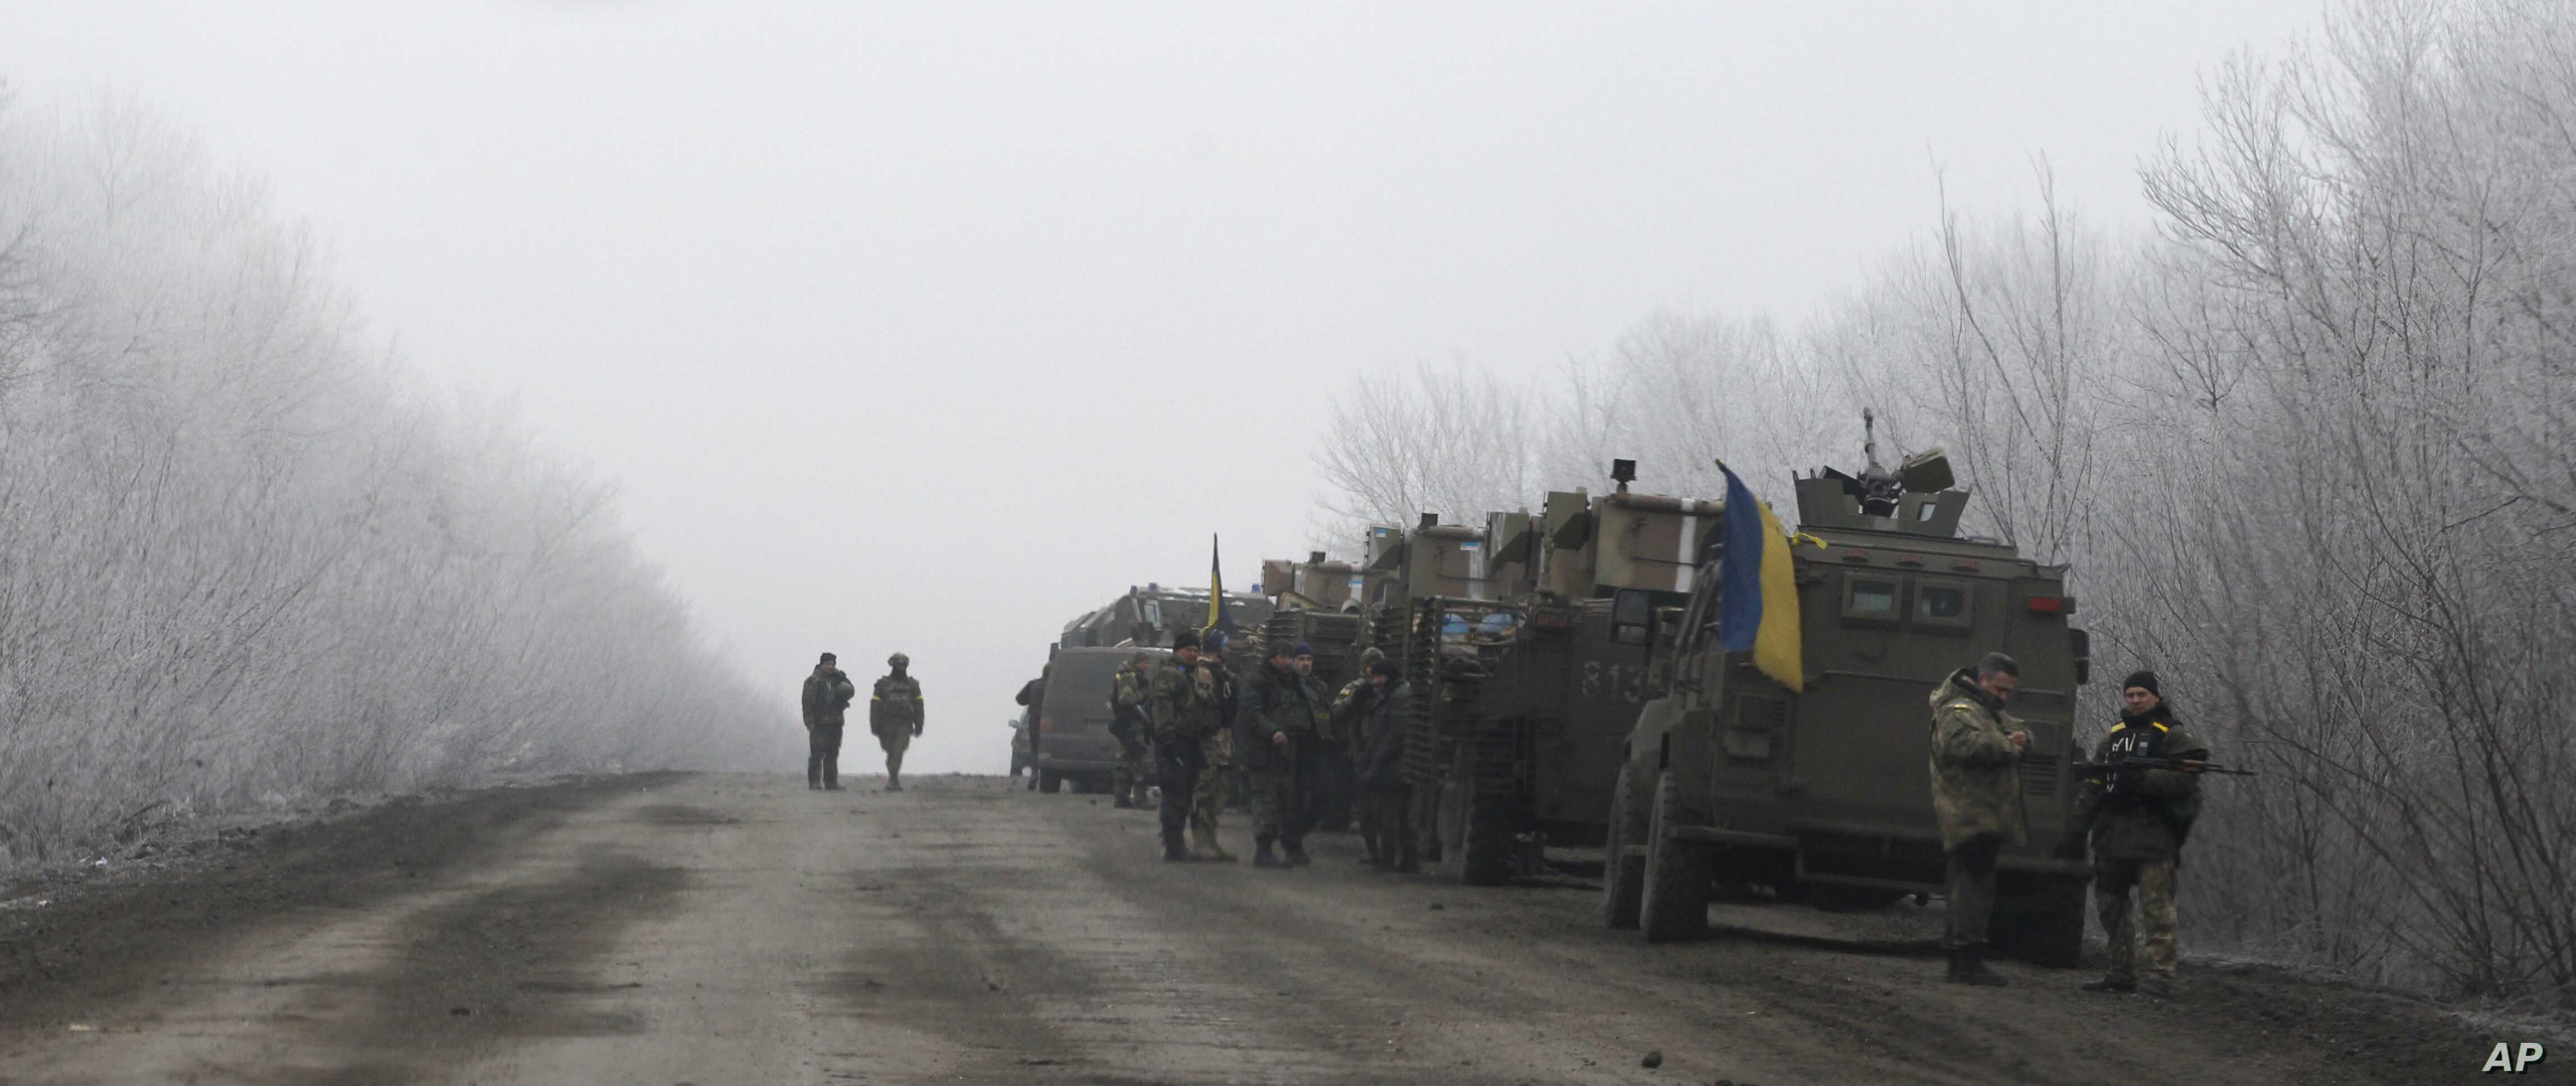 Ukrainian military convoy stop on the road between the towns of Dabeltseve and Artemivsk, Ukraine, Feb. 14, 2015.